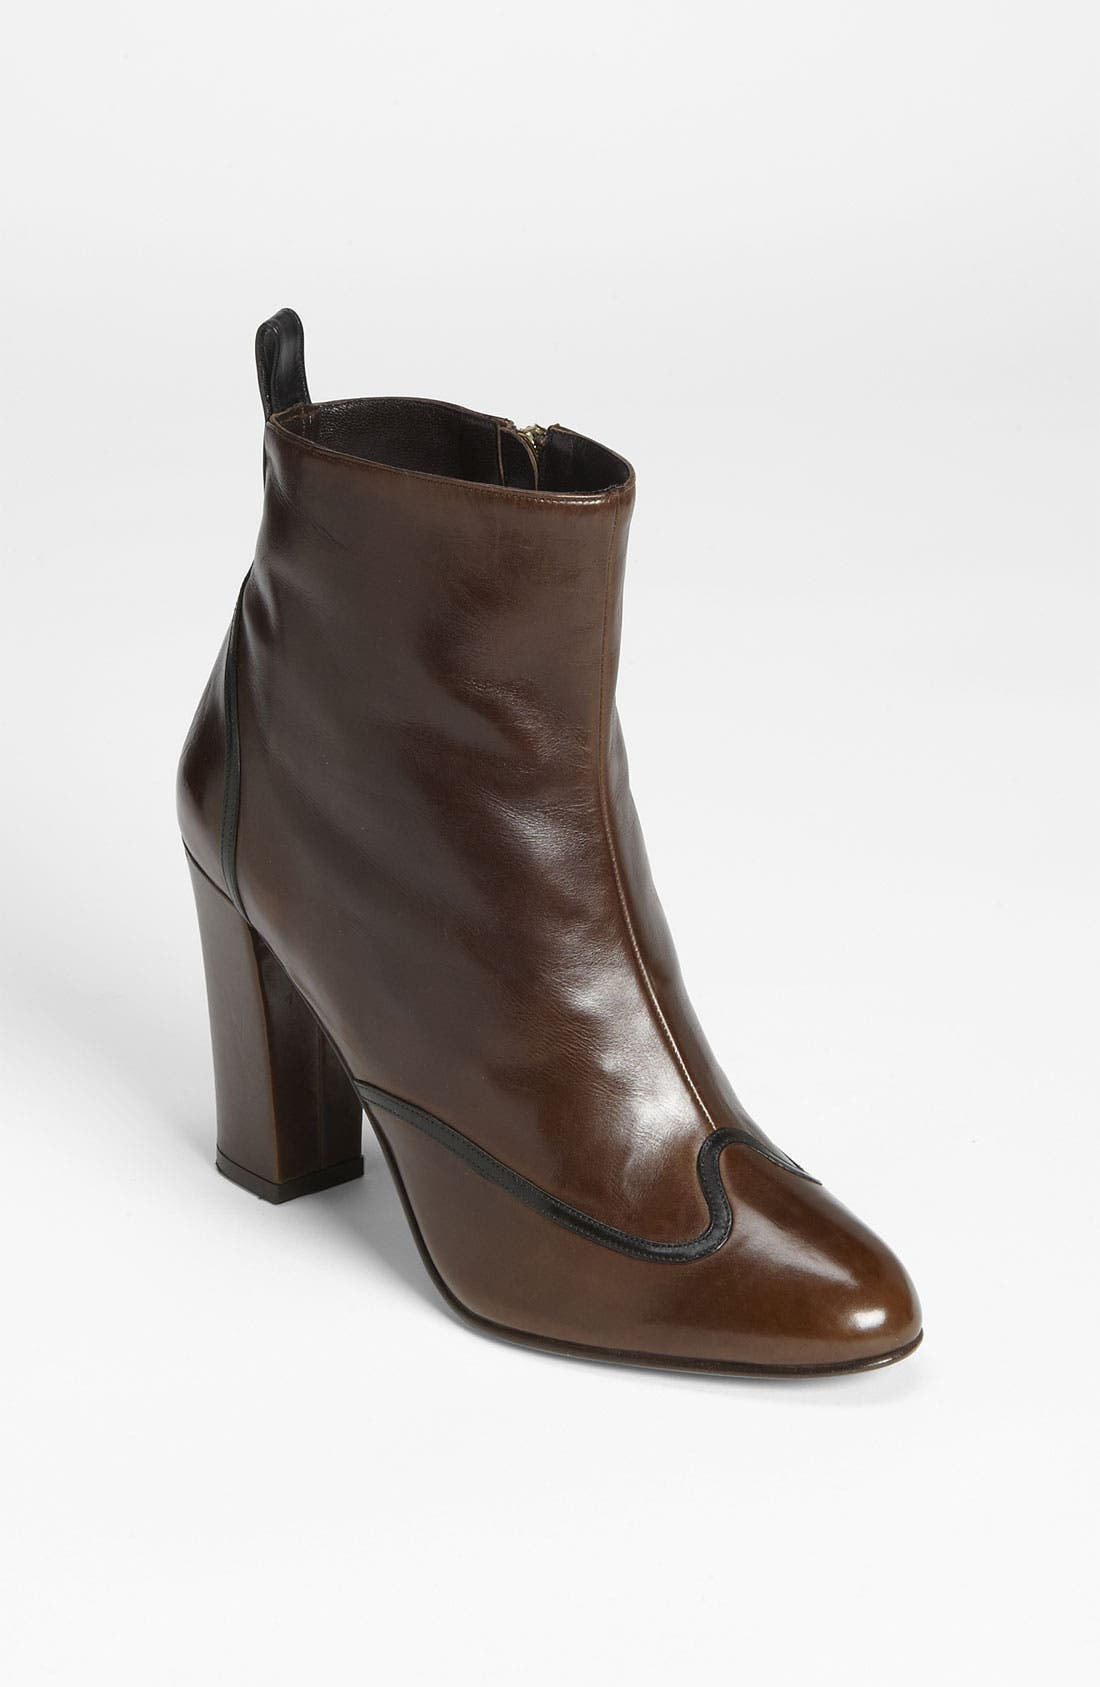 Main Image - Delman 'Folly' Ankle Boot (Online Exclusive)